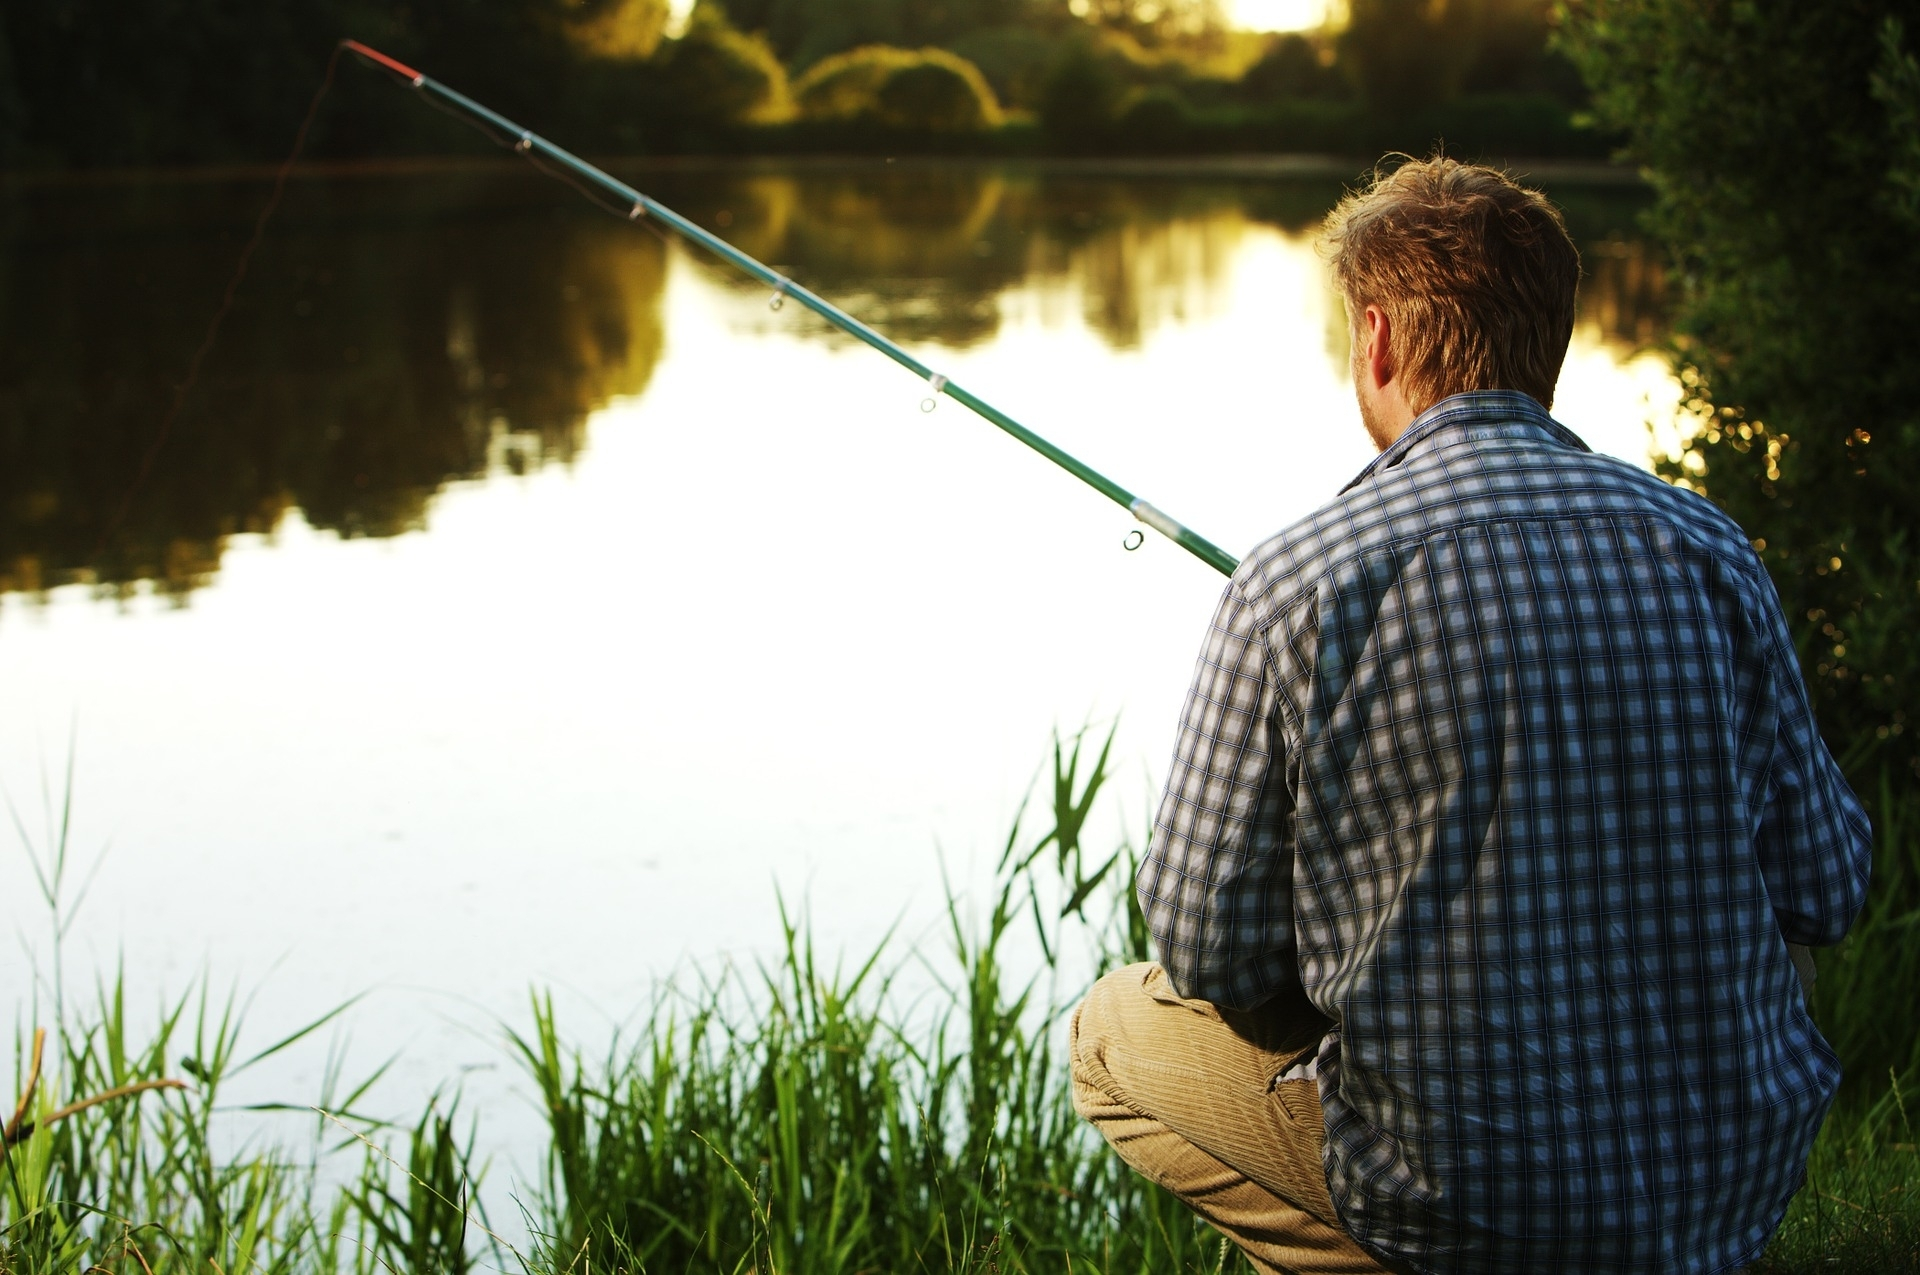 Fishing Calendar For 2021 | Best Fishing Times From The Old